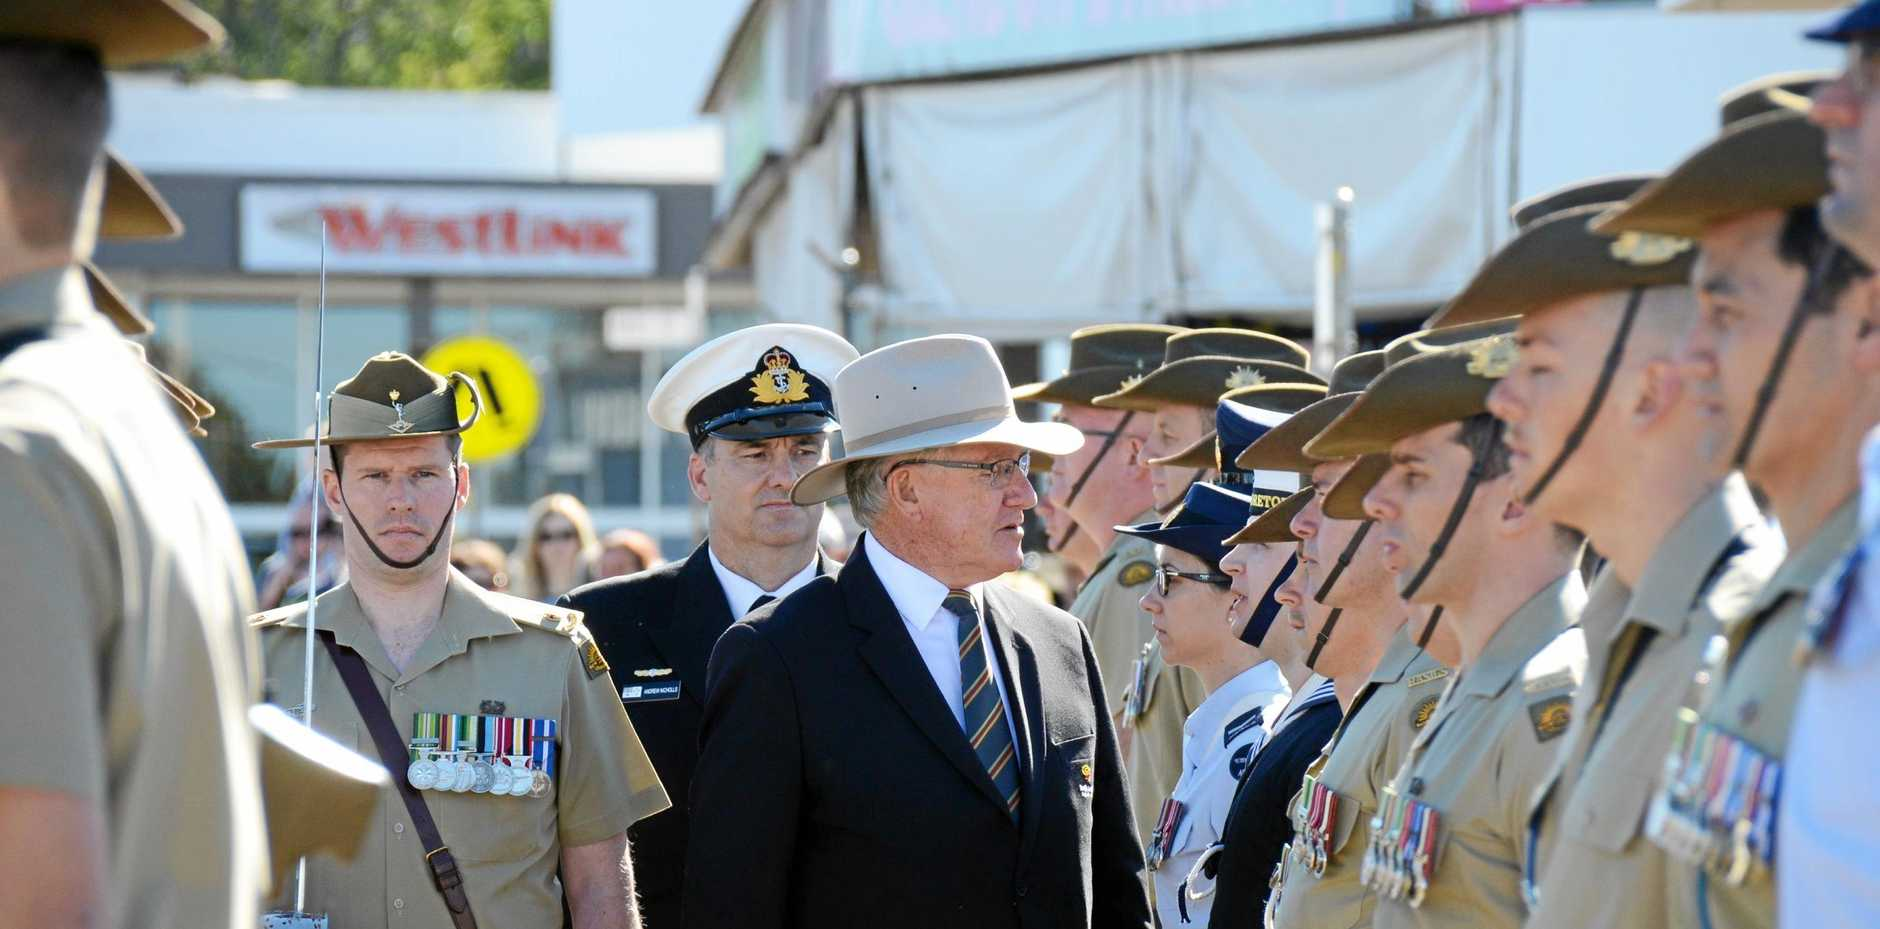 LEST WE FORGET: South Burnett Regional Council Mayor Keith Campbell encourages people to take time to reflect on Anzac Day.